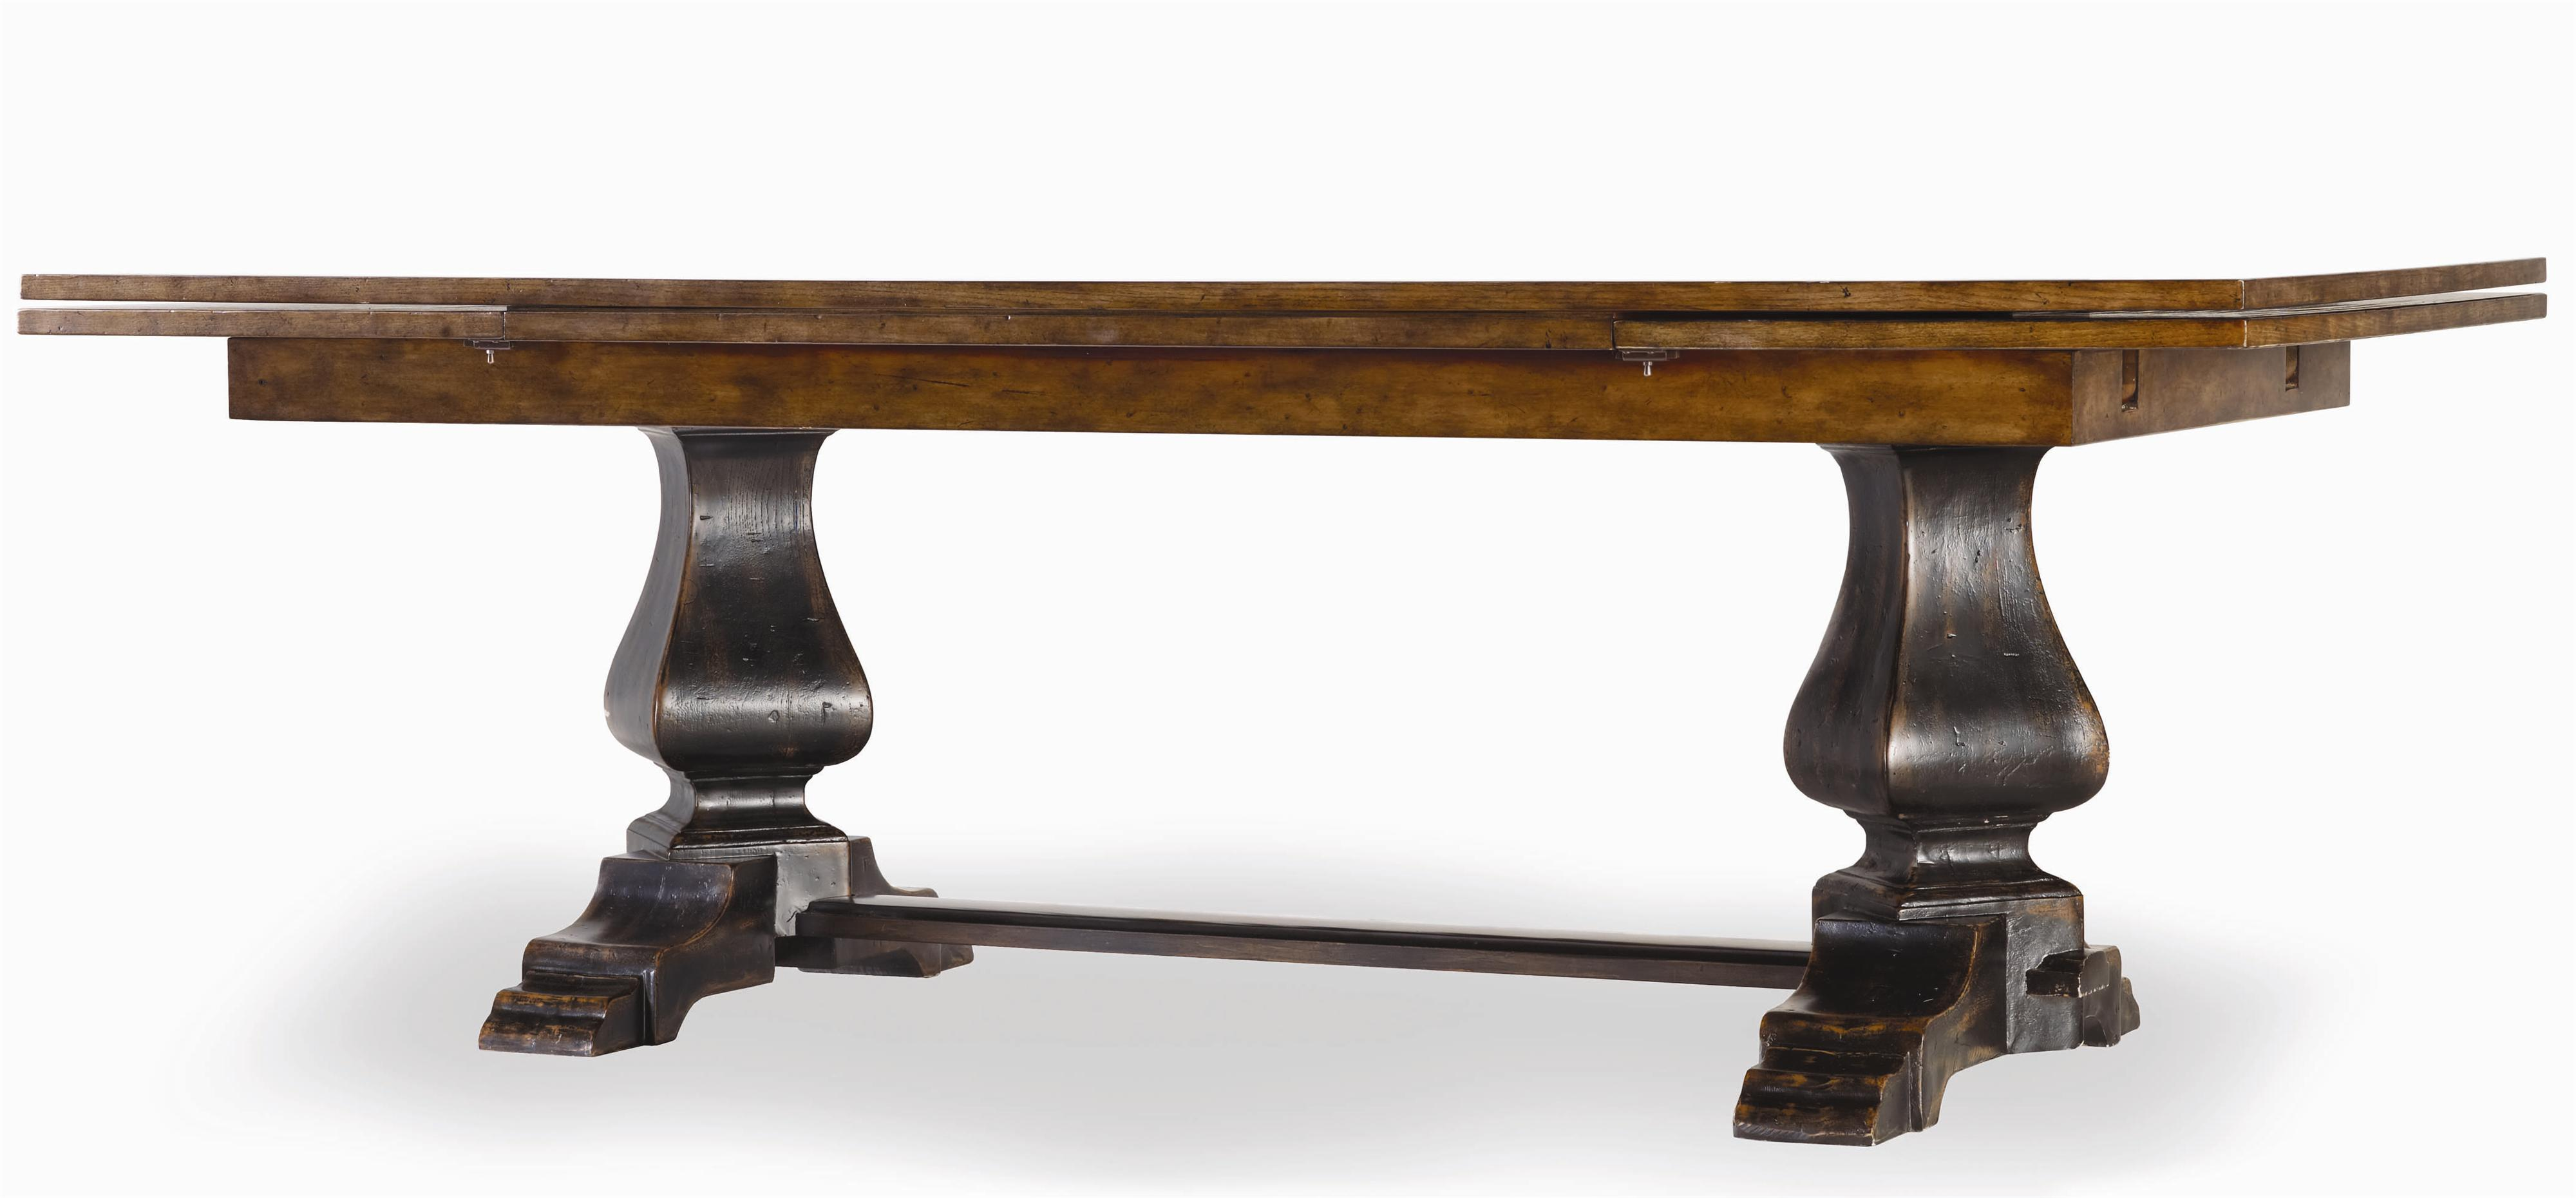 Hooker Furniture Sanctuary Refectory Table - Item Number: 3005-75207